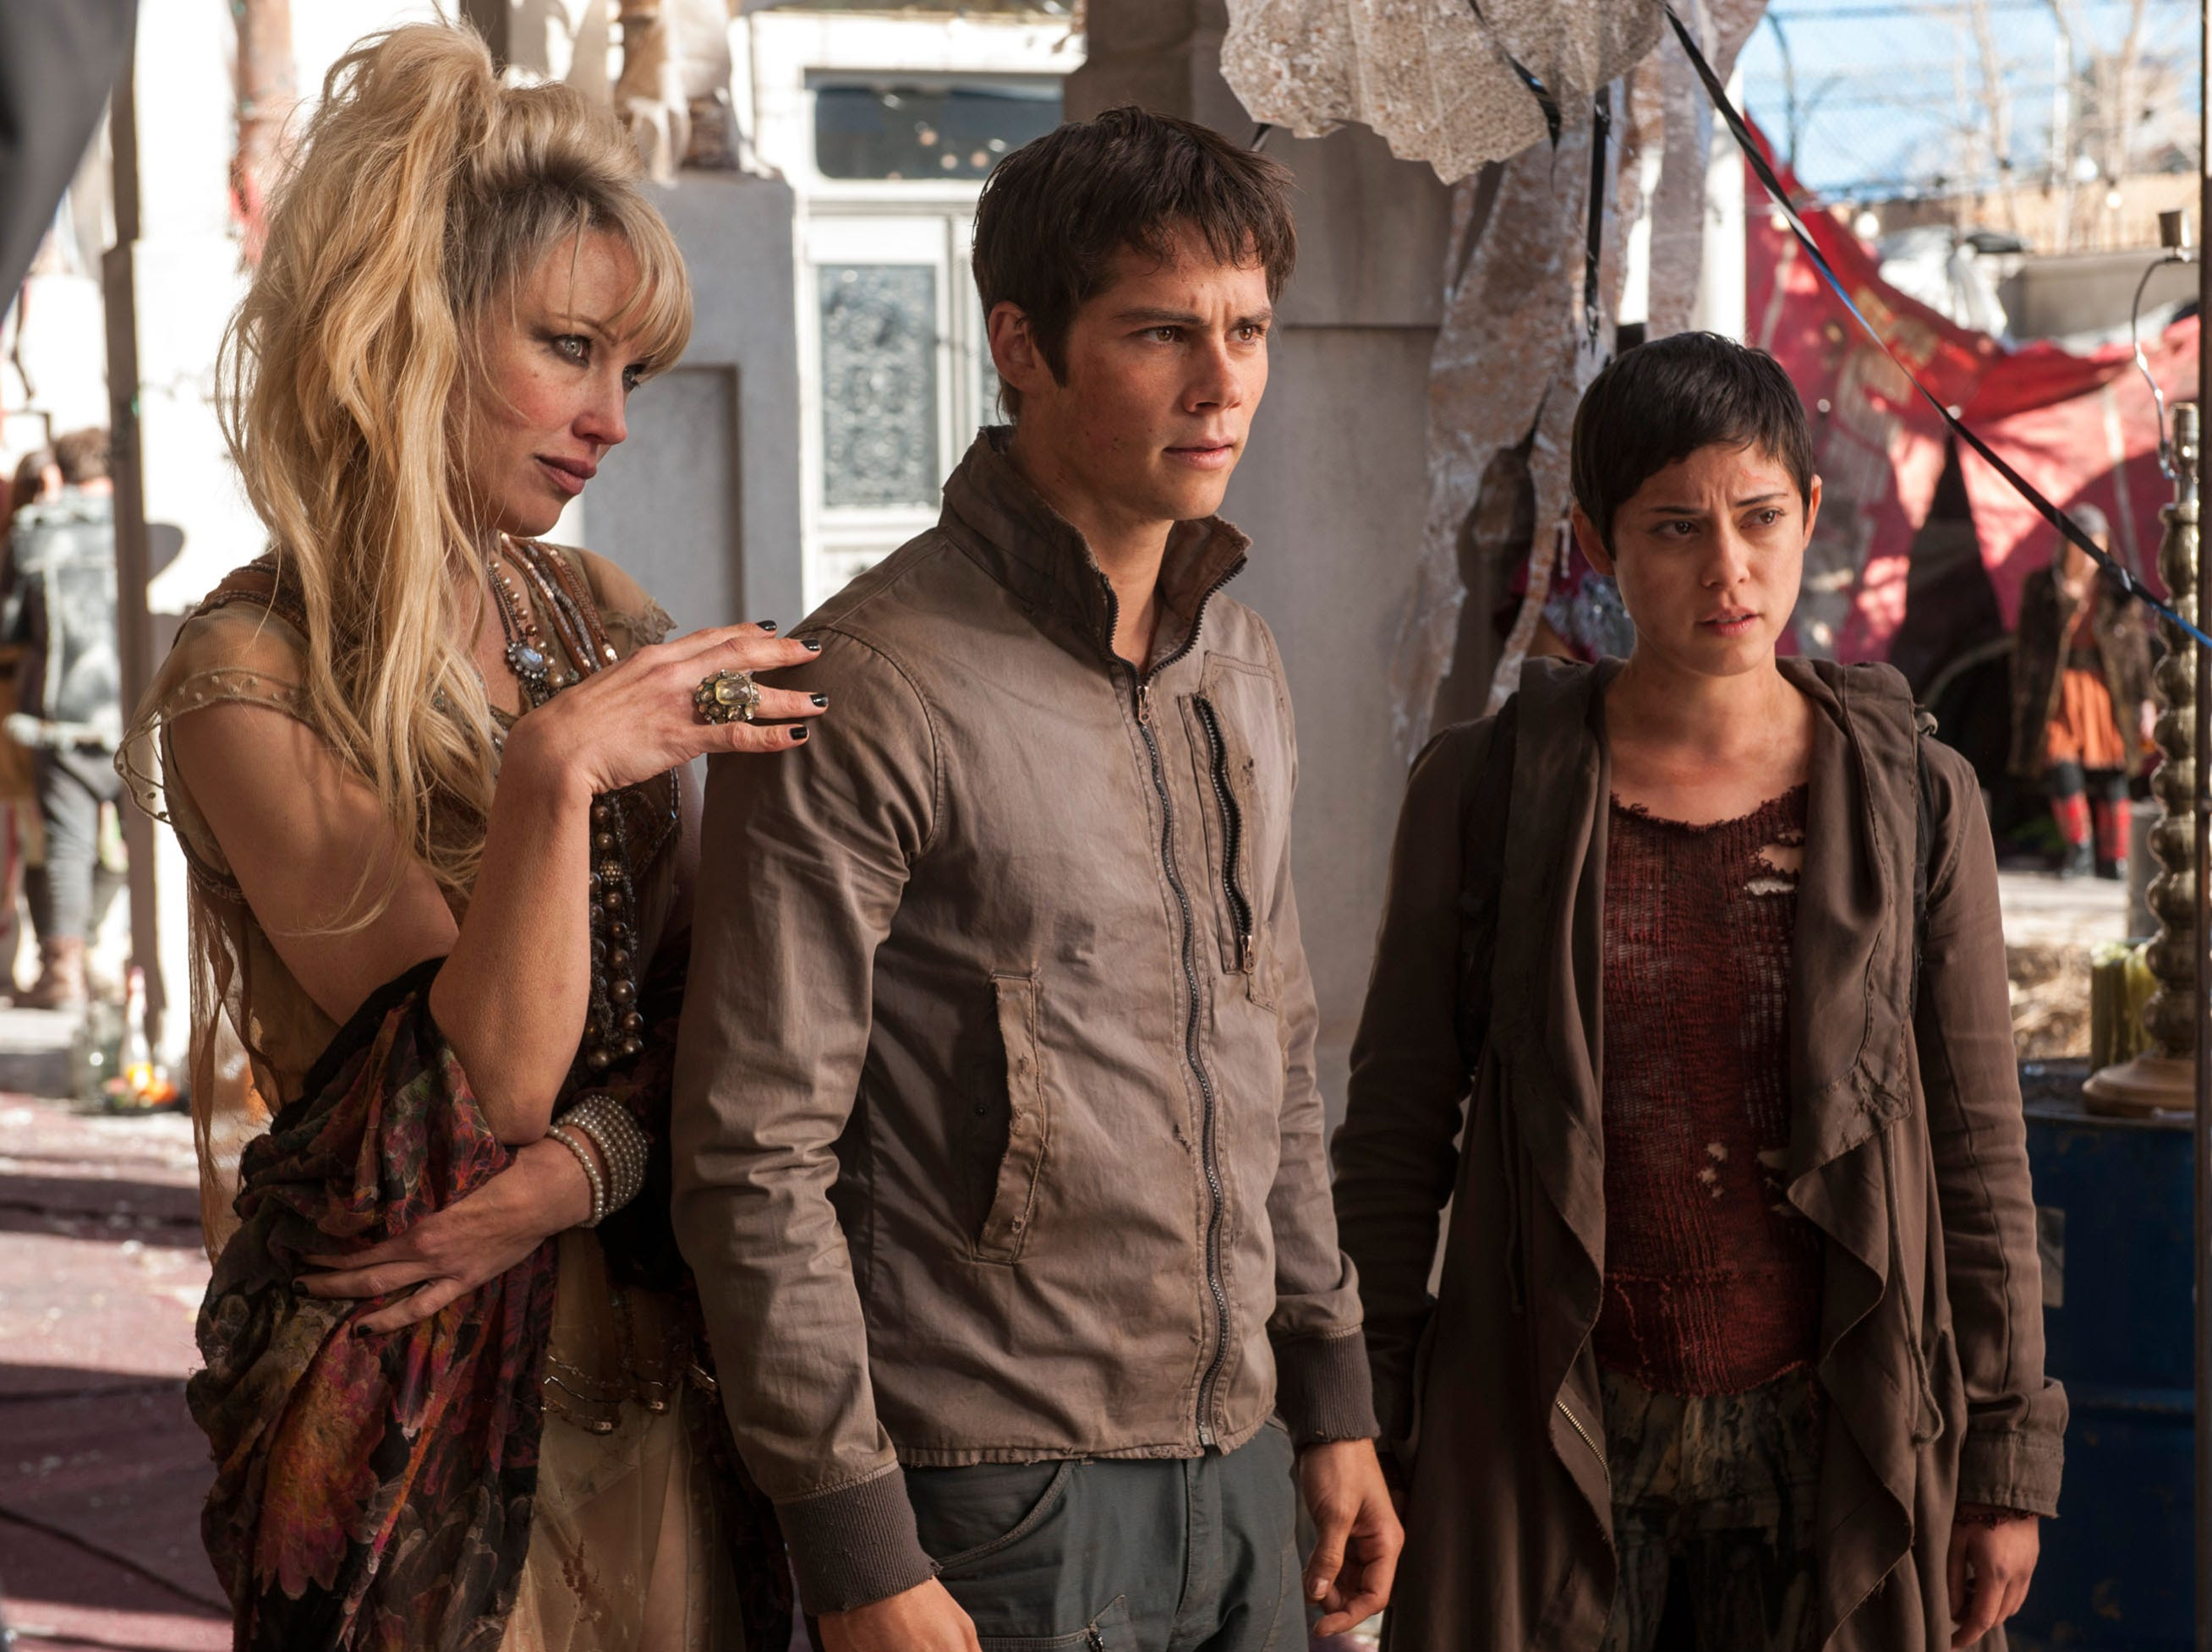 Thomas (Dylan O'Brien, center) surveys his new environment, along with Ponytail (Jenny Gabrielle, left) and Brenda (Rosa Salazar) in the motion picture 'Maze Runner: The Scorch Trials.' Credit: Richard Foreman, Jr., Twentieth Century Fox Film  [Via MerlinFTP Drop]